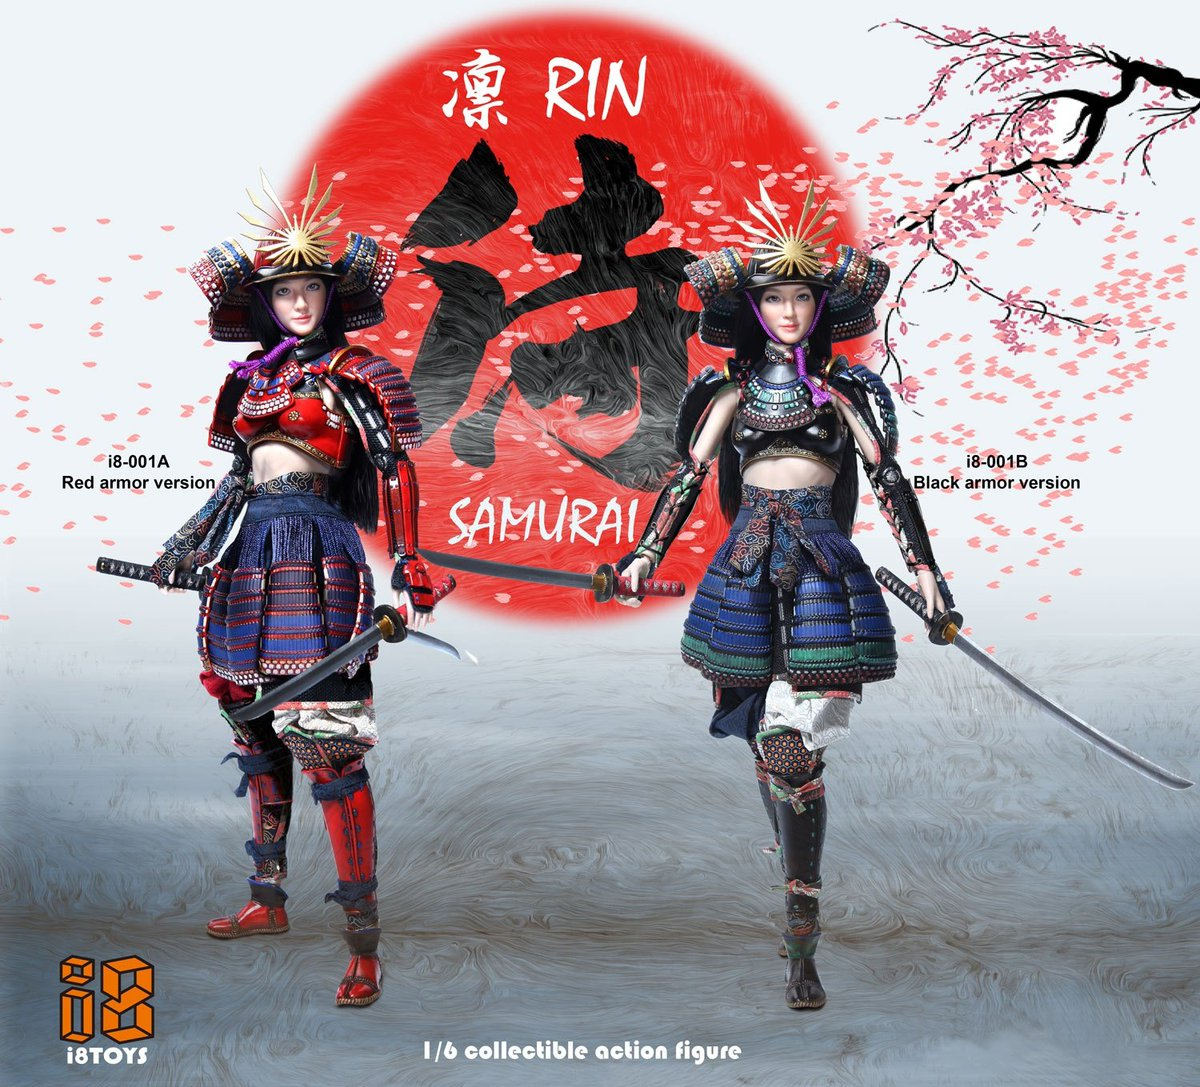 Smcg On Twitter New Brand I8toys Rin 1 6 Scale Female Samurai Figure Order Now Smcgcustoms Https Tco W7dlqgx4p1